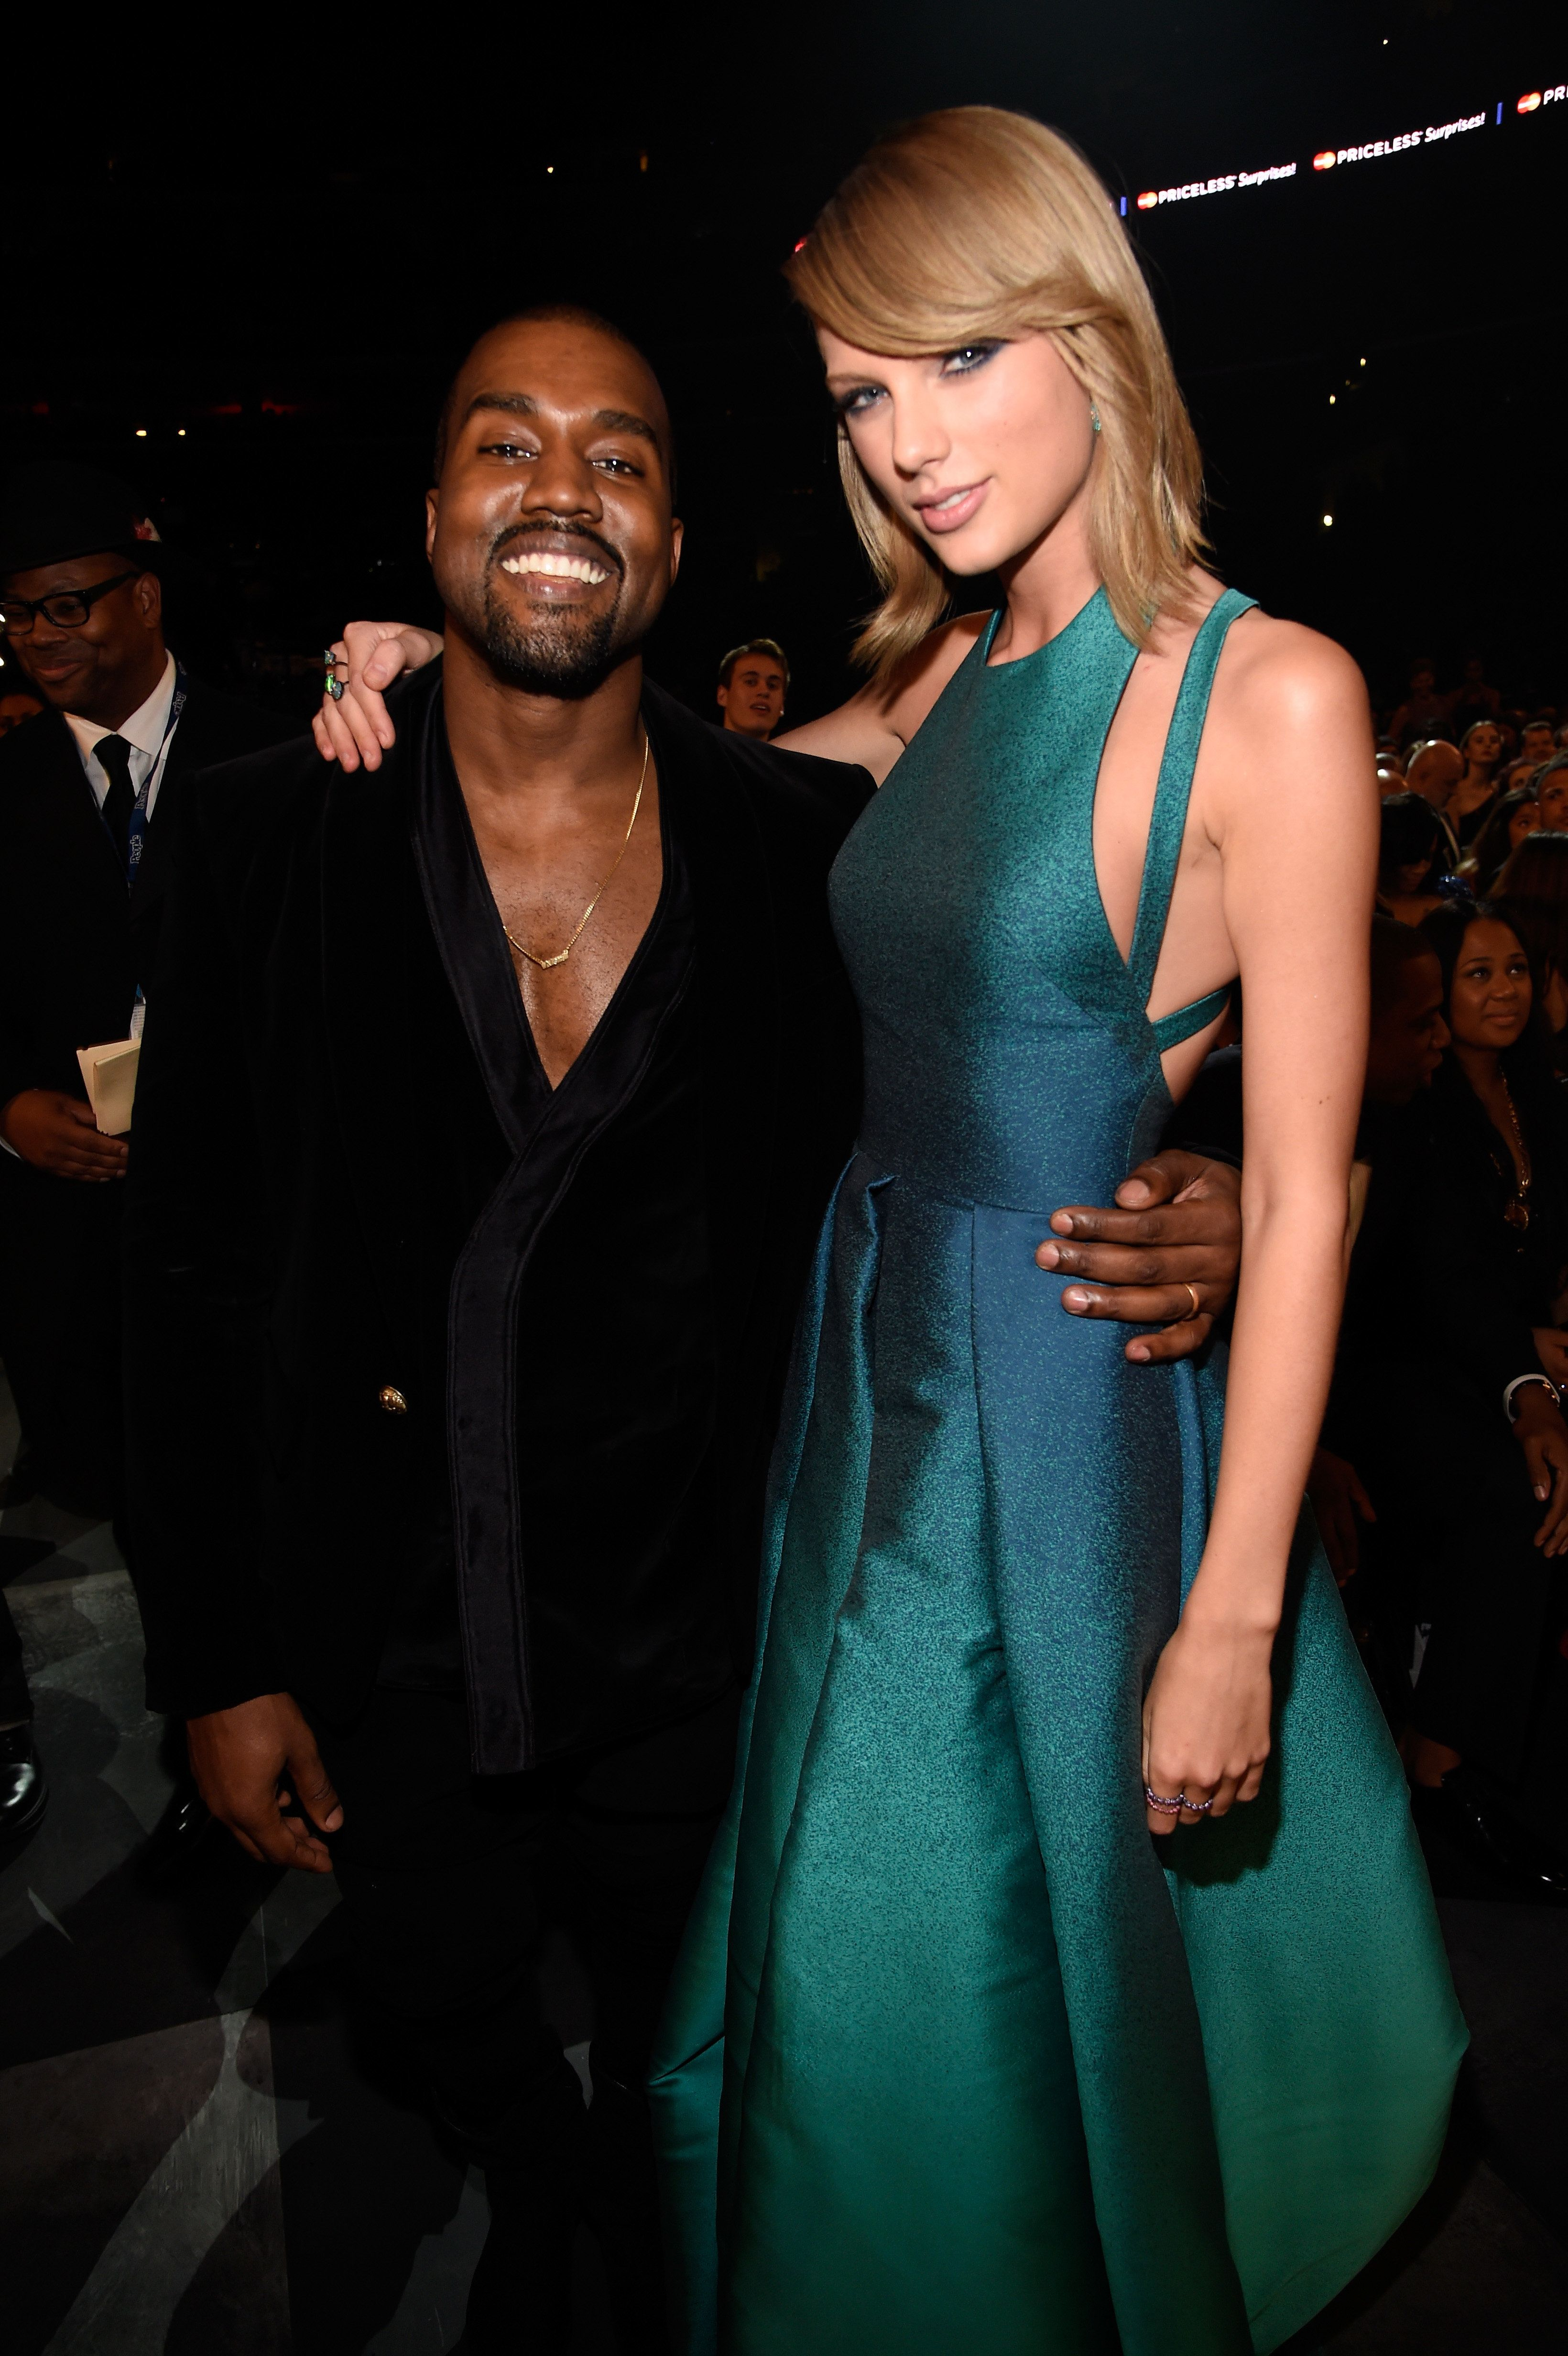 LOS ANGELES, CA - FEBRUARY 08:  Kanye West and Taylor Swift attend The 57th Annual GRAMMY Awards at STAPLES Center on February 8, 2015 in Los Angeles, California.  (Photo by Kevin Mazur/WireImage)